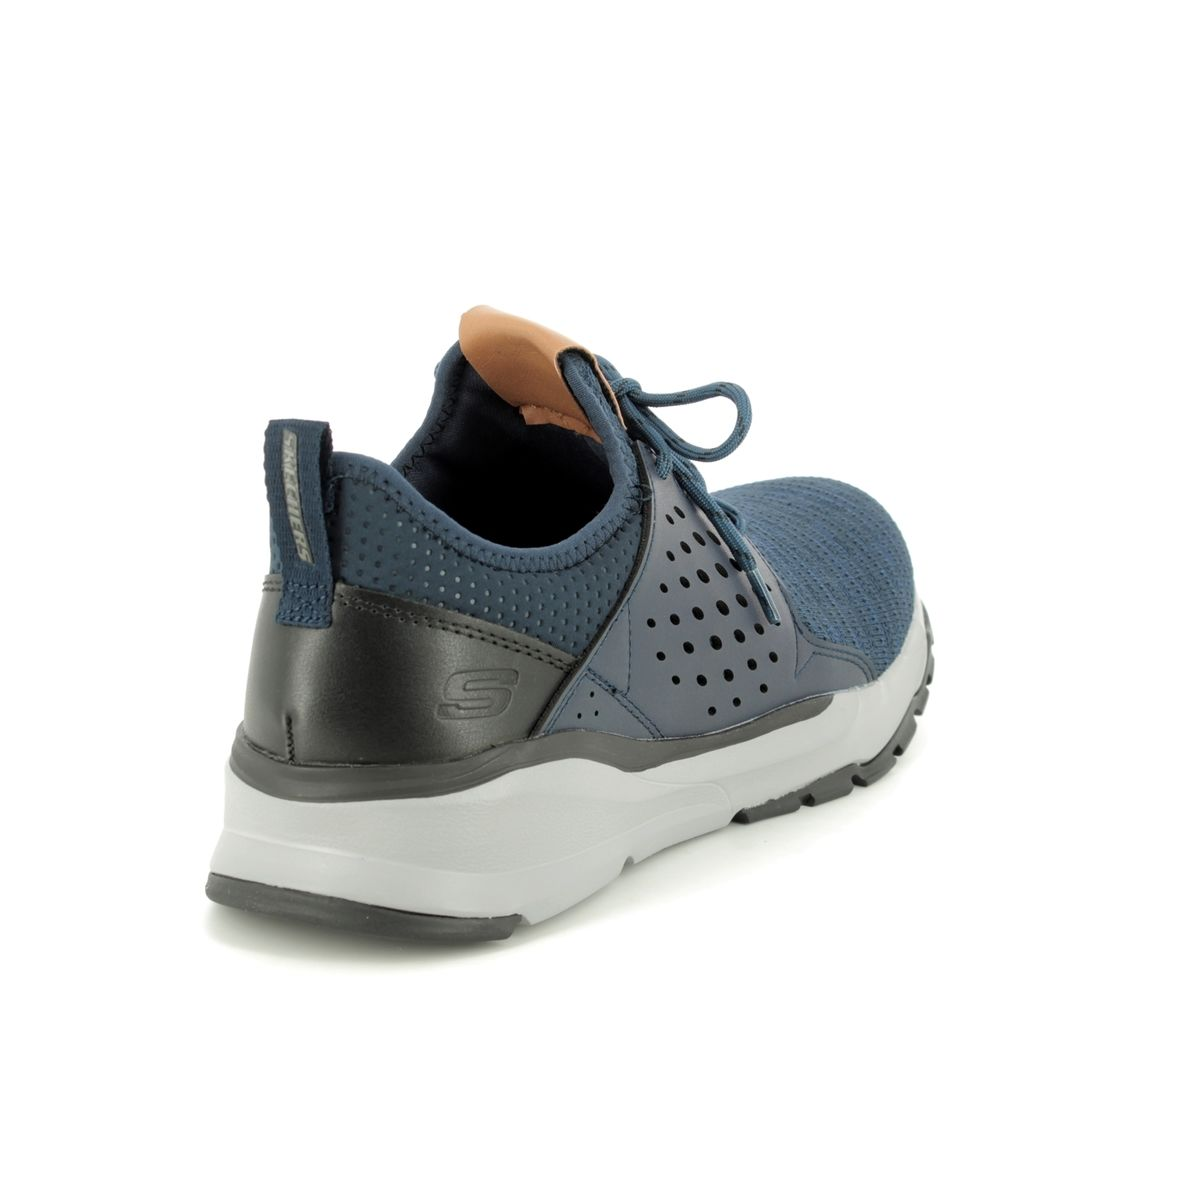 65659 Relven Velton at Begg Shoes & Bags